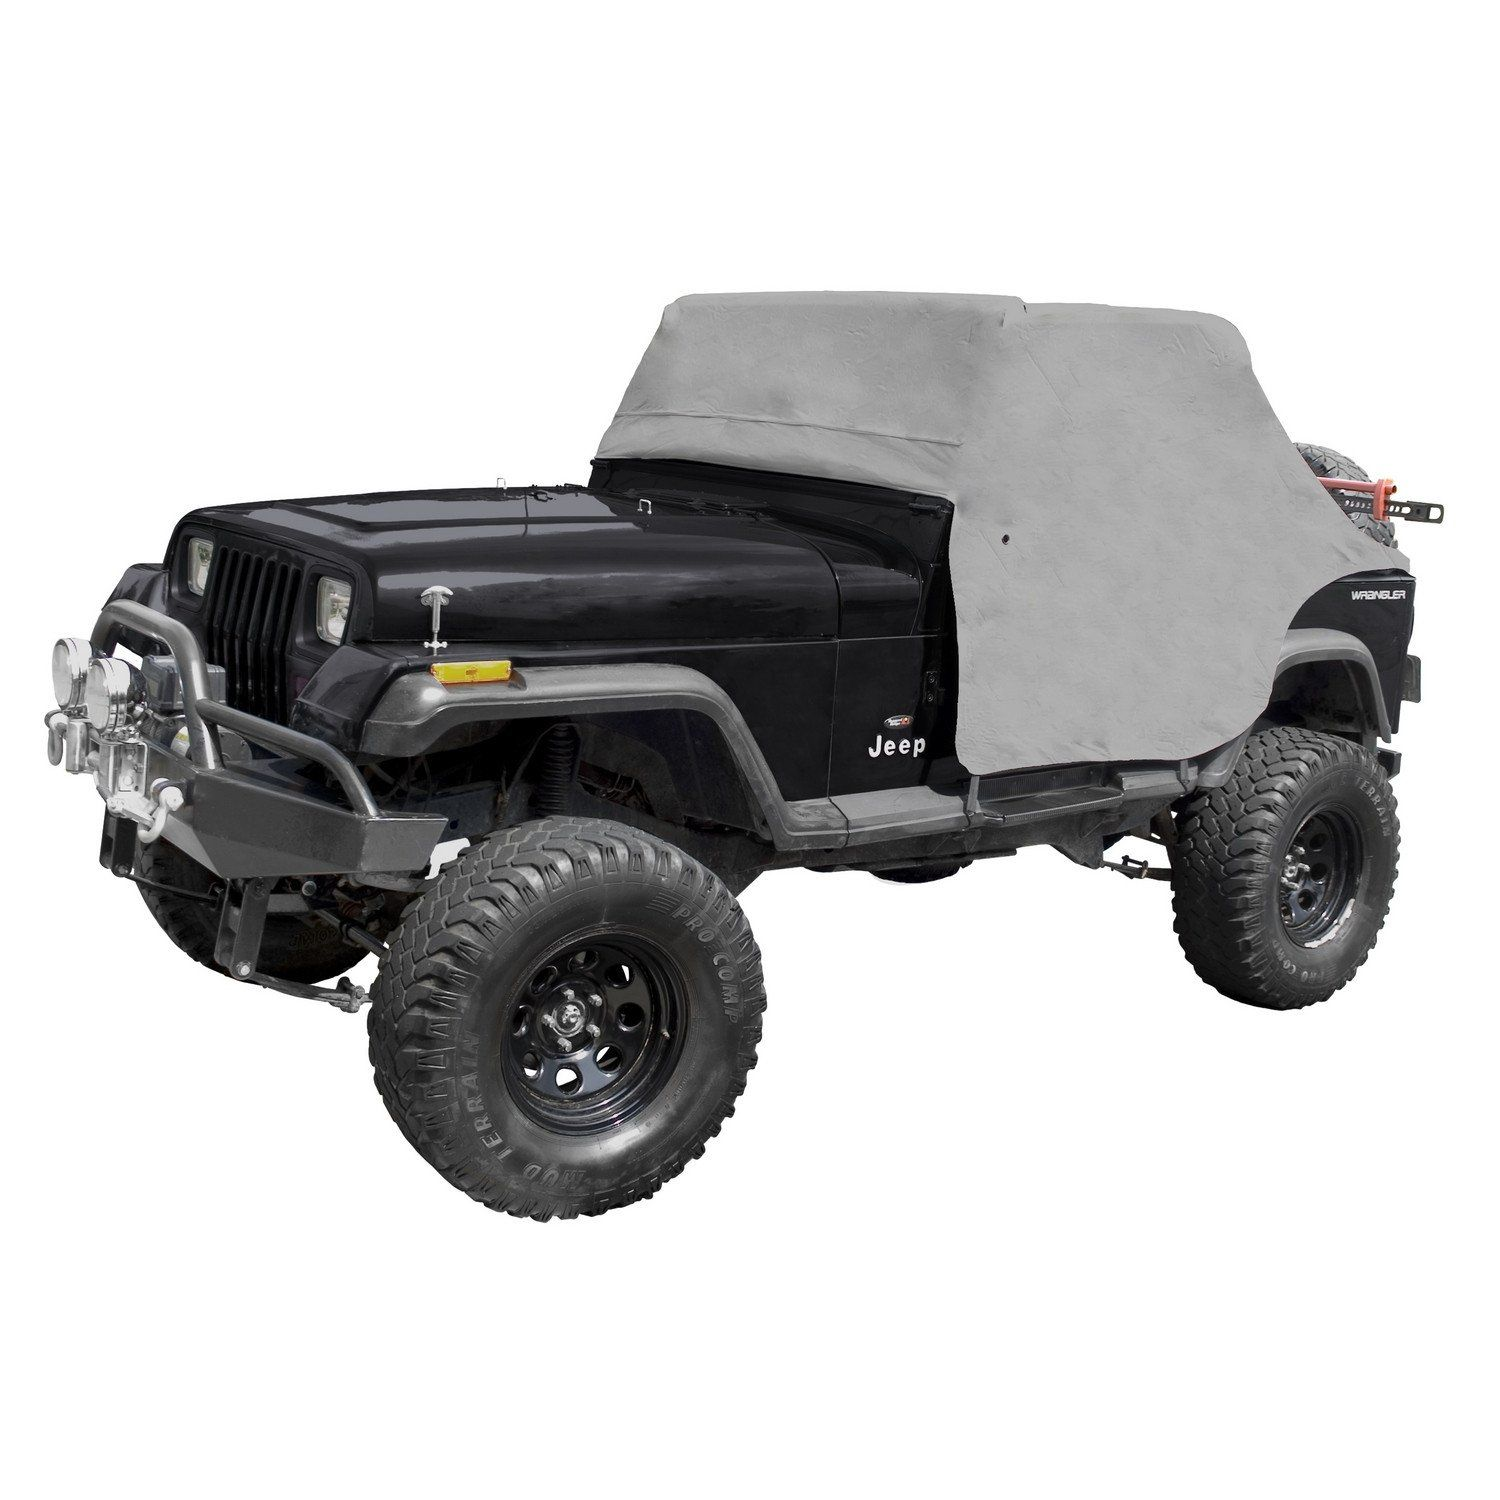 Cab Cover Gray By Rugged Ridge 87 91 Jeep Wrangler Yj Jeep Wrangler Yj Jeep Wrangler Jeep